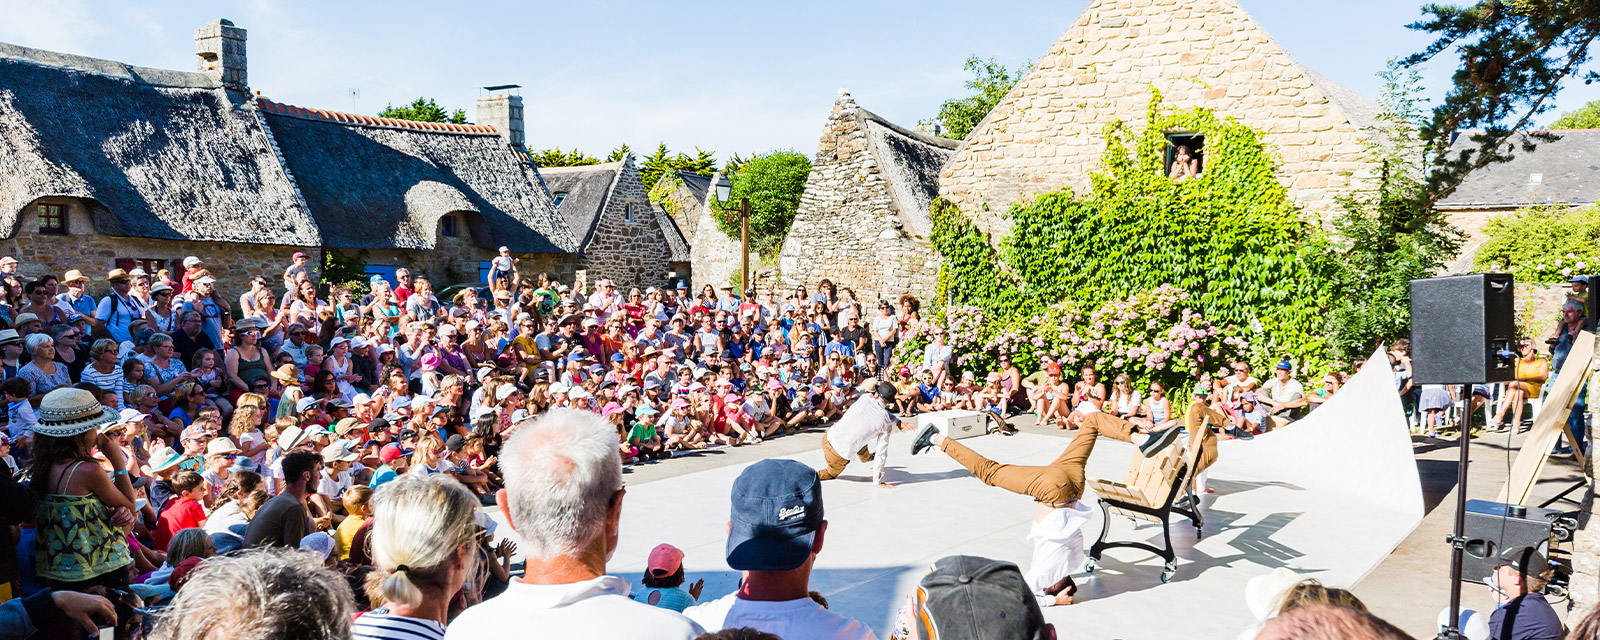 Hip Hop demonstration within the thatched houses hamlet